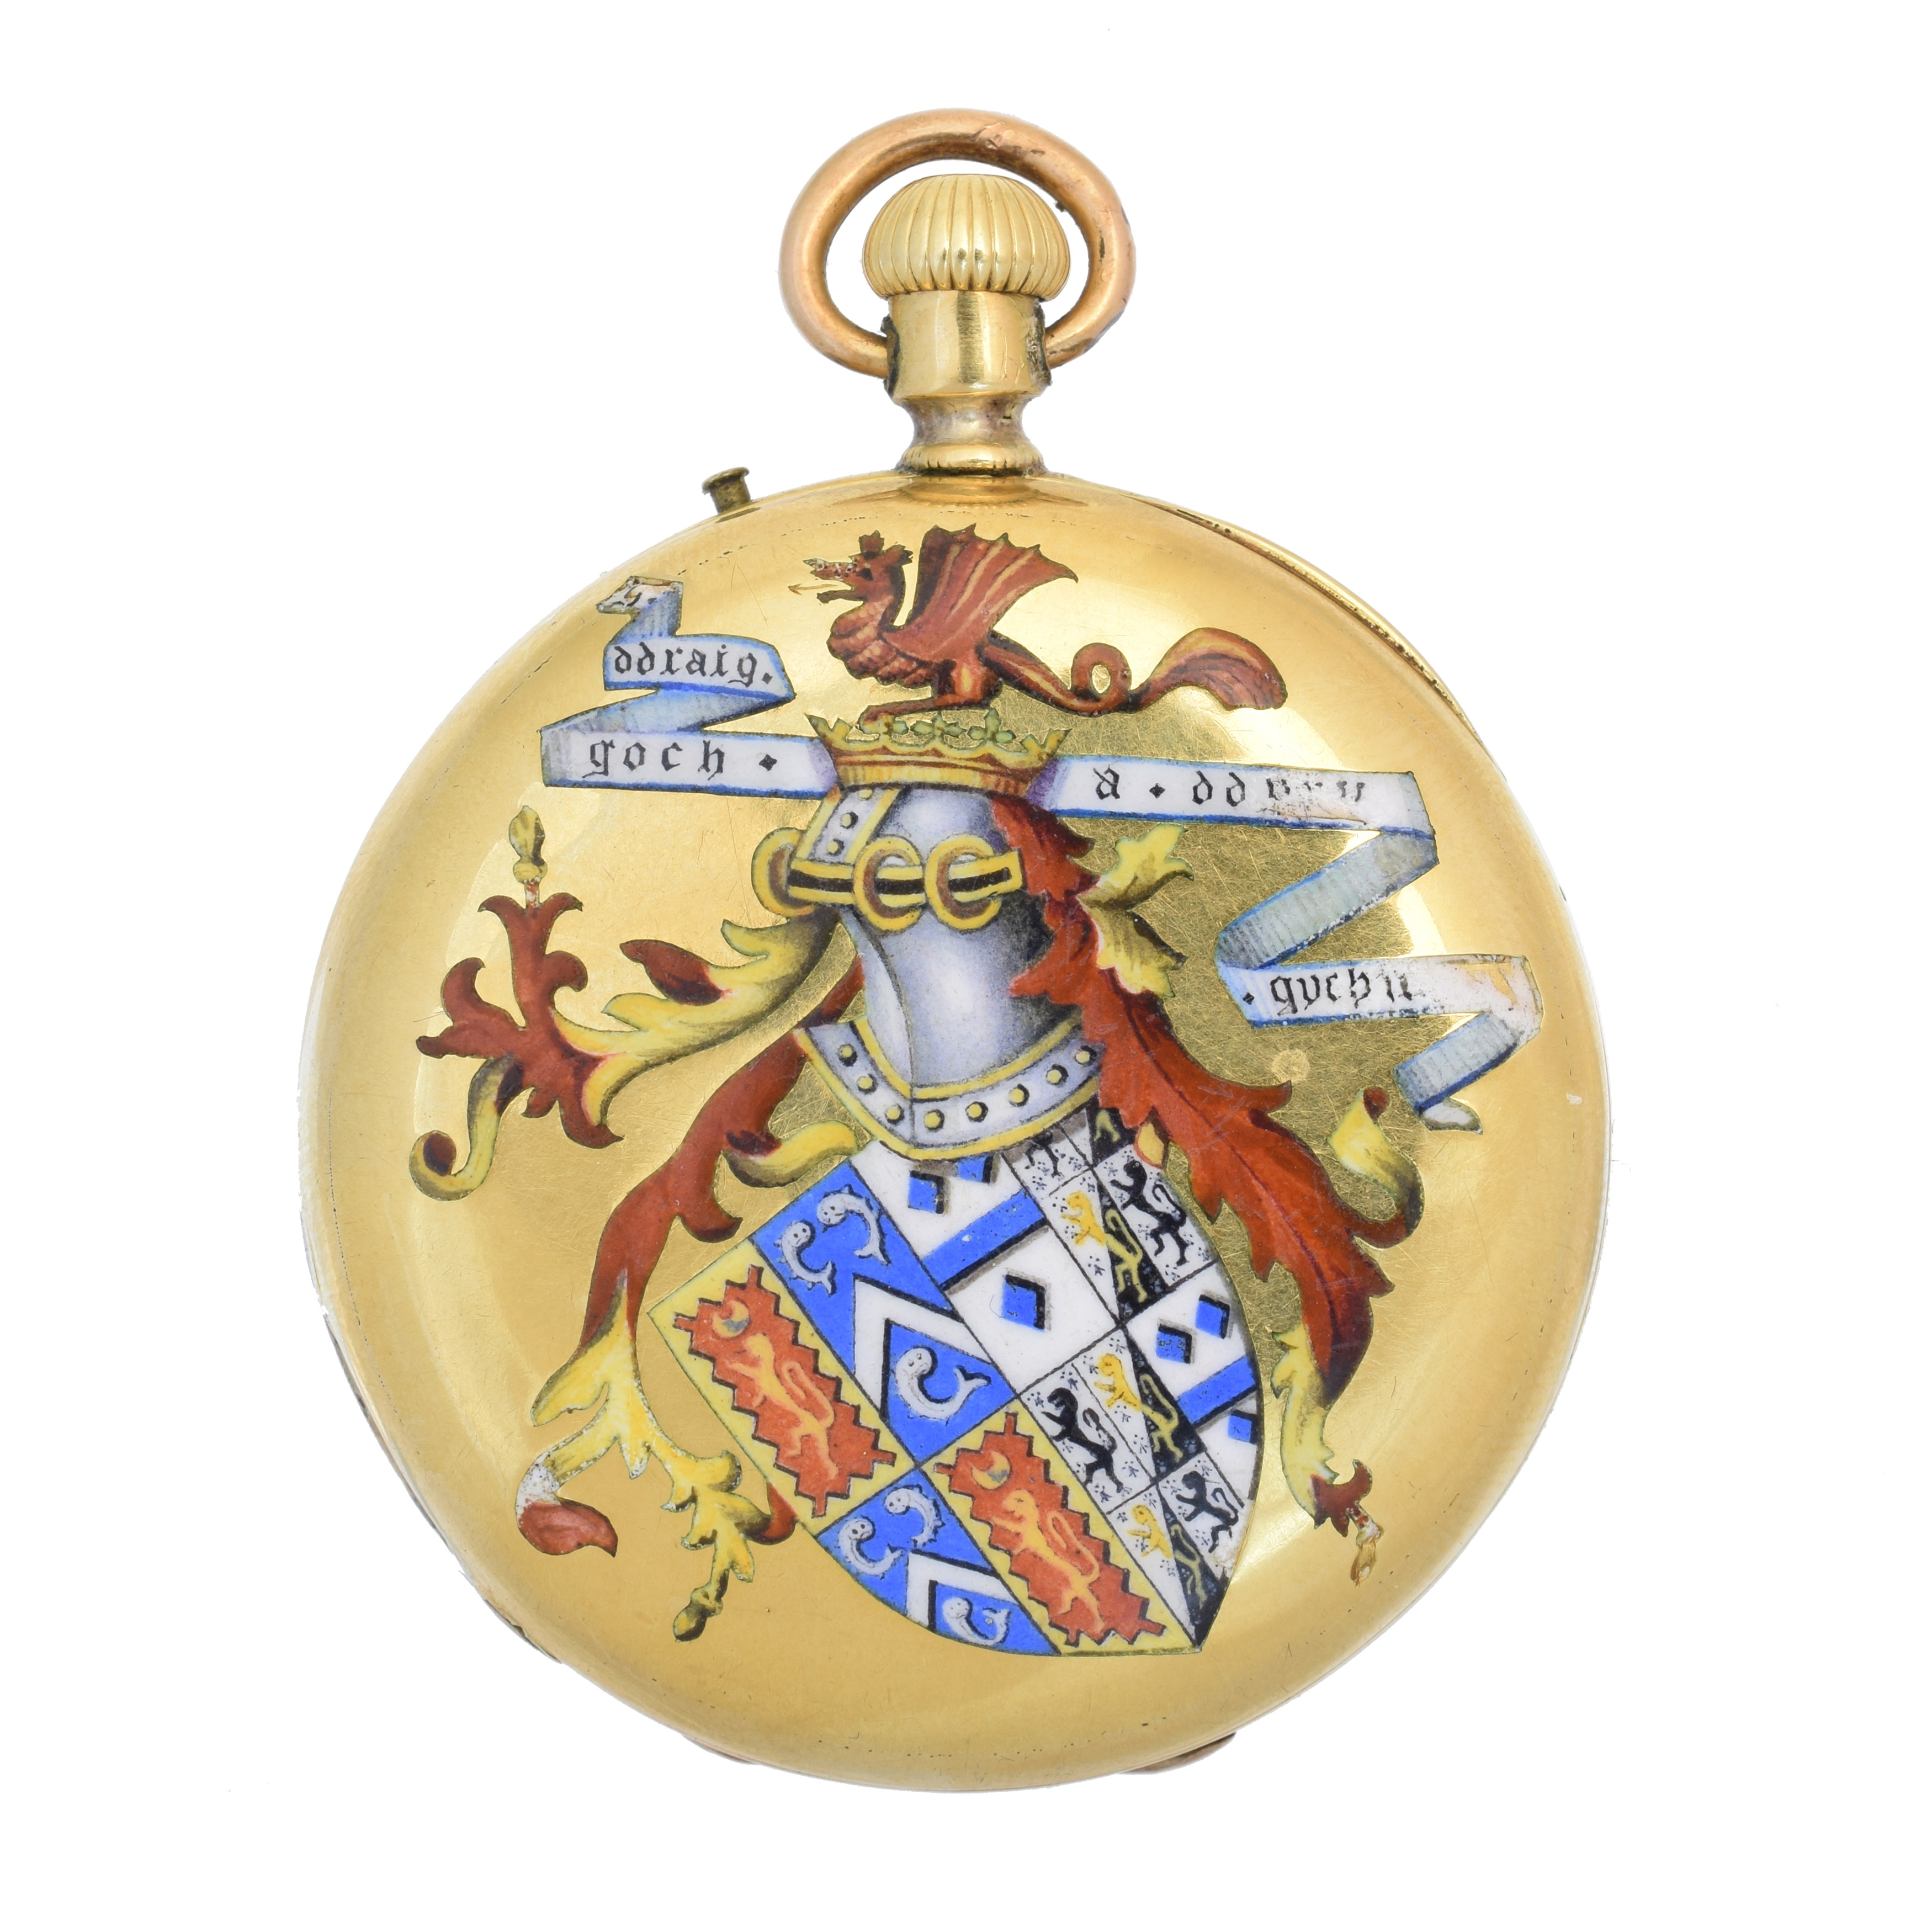 A late 19th century 18ct gold enamel hunter pocket watch, the 18ct gold case bearing vari shade enamel decoration, one side a monogram, and the other coat of arms and 'y ddraig goch a ddyry gychwyn' motto (the red dragon inspires action) with roman numeral markers, unsigned keyless movement, inner case signed 'J.W. Benson by special appointment to HRH The Prince of Wales, 25 Old Bond Street' case, bearing French assay marks, case diameter 37mm, gross weight 45.6g.